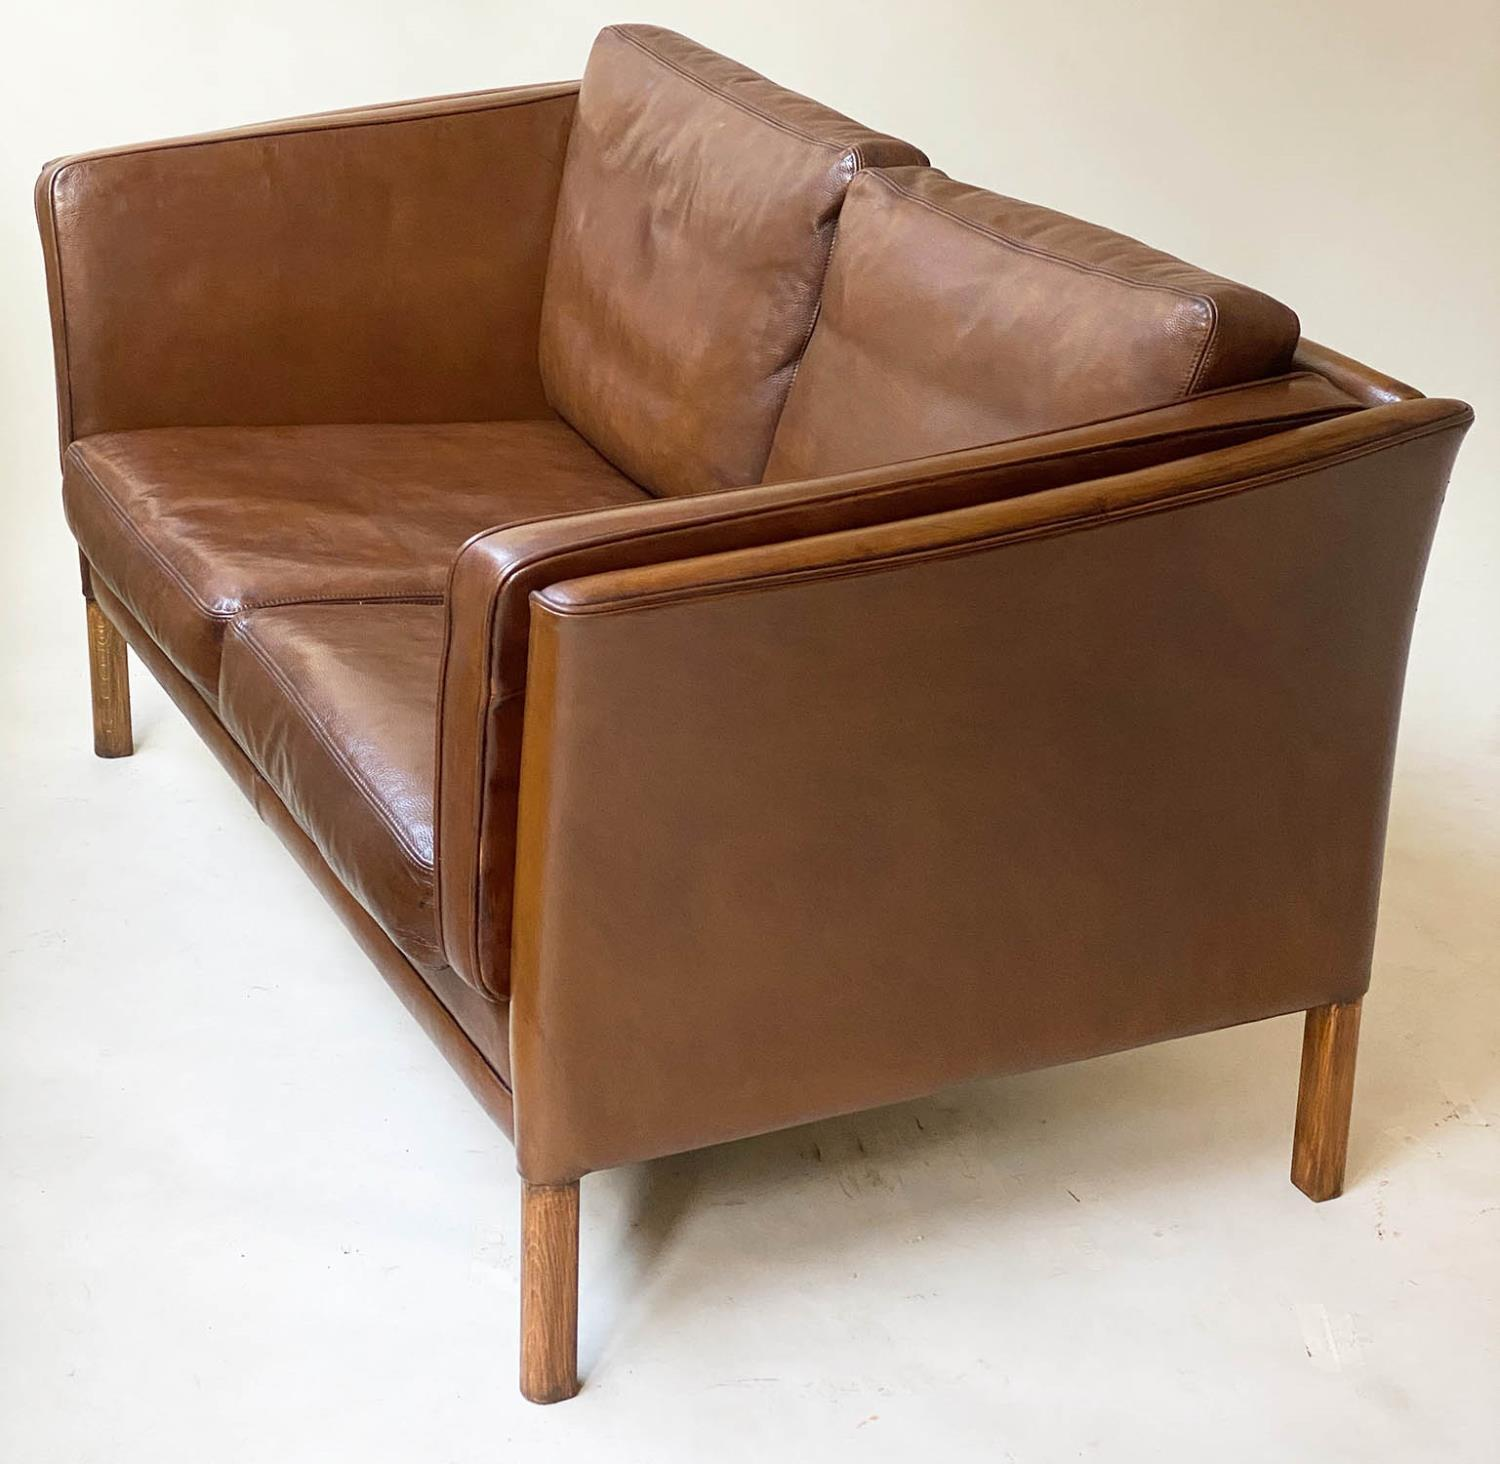 SOFA, teak, 1970's Danish style grained tan leather with two cushion seat and back, 150cm W. - Image 4 of 5